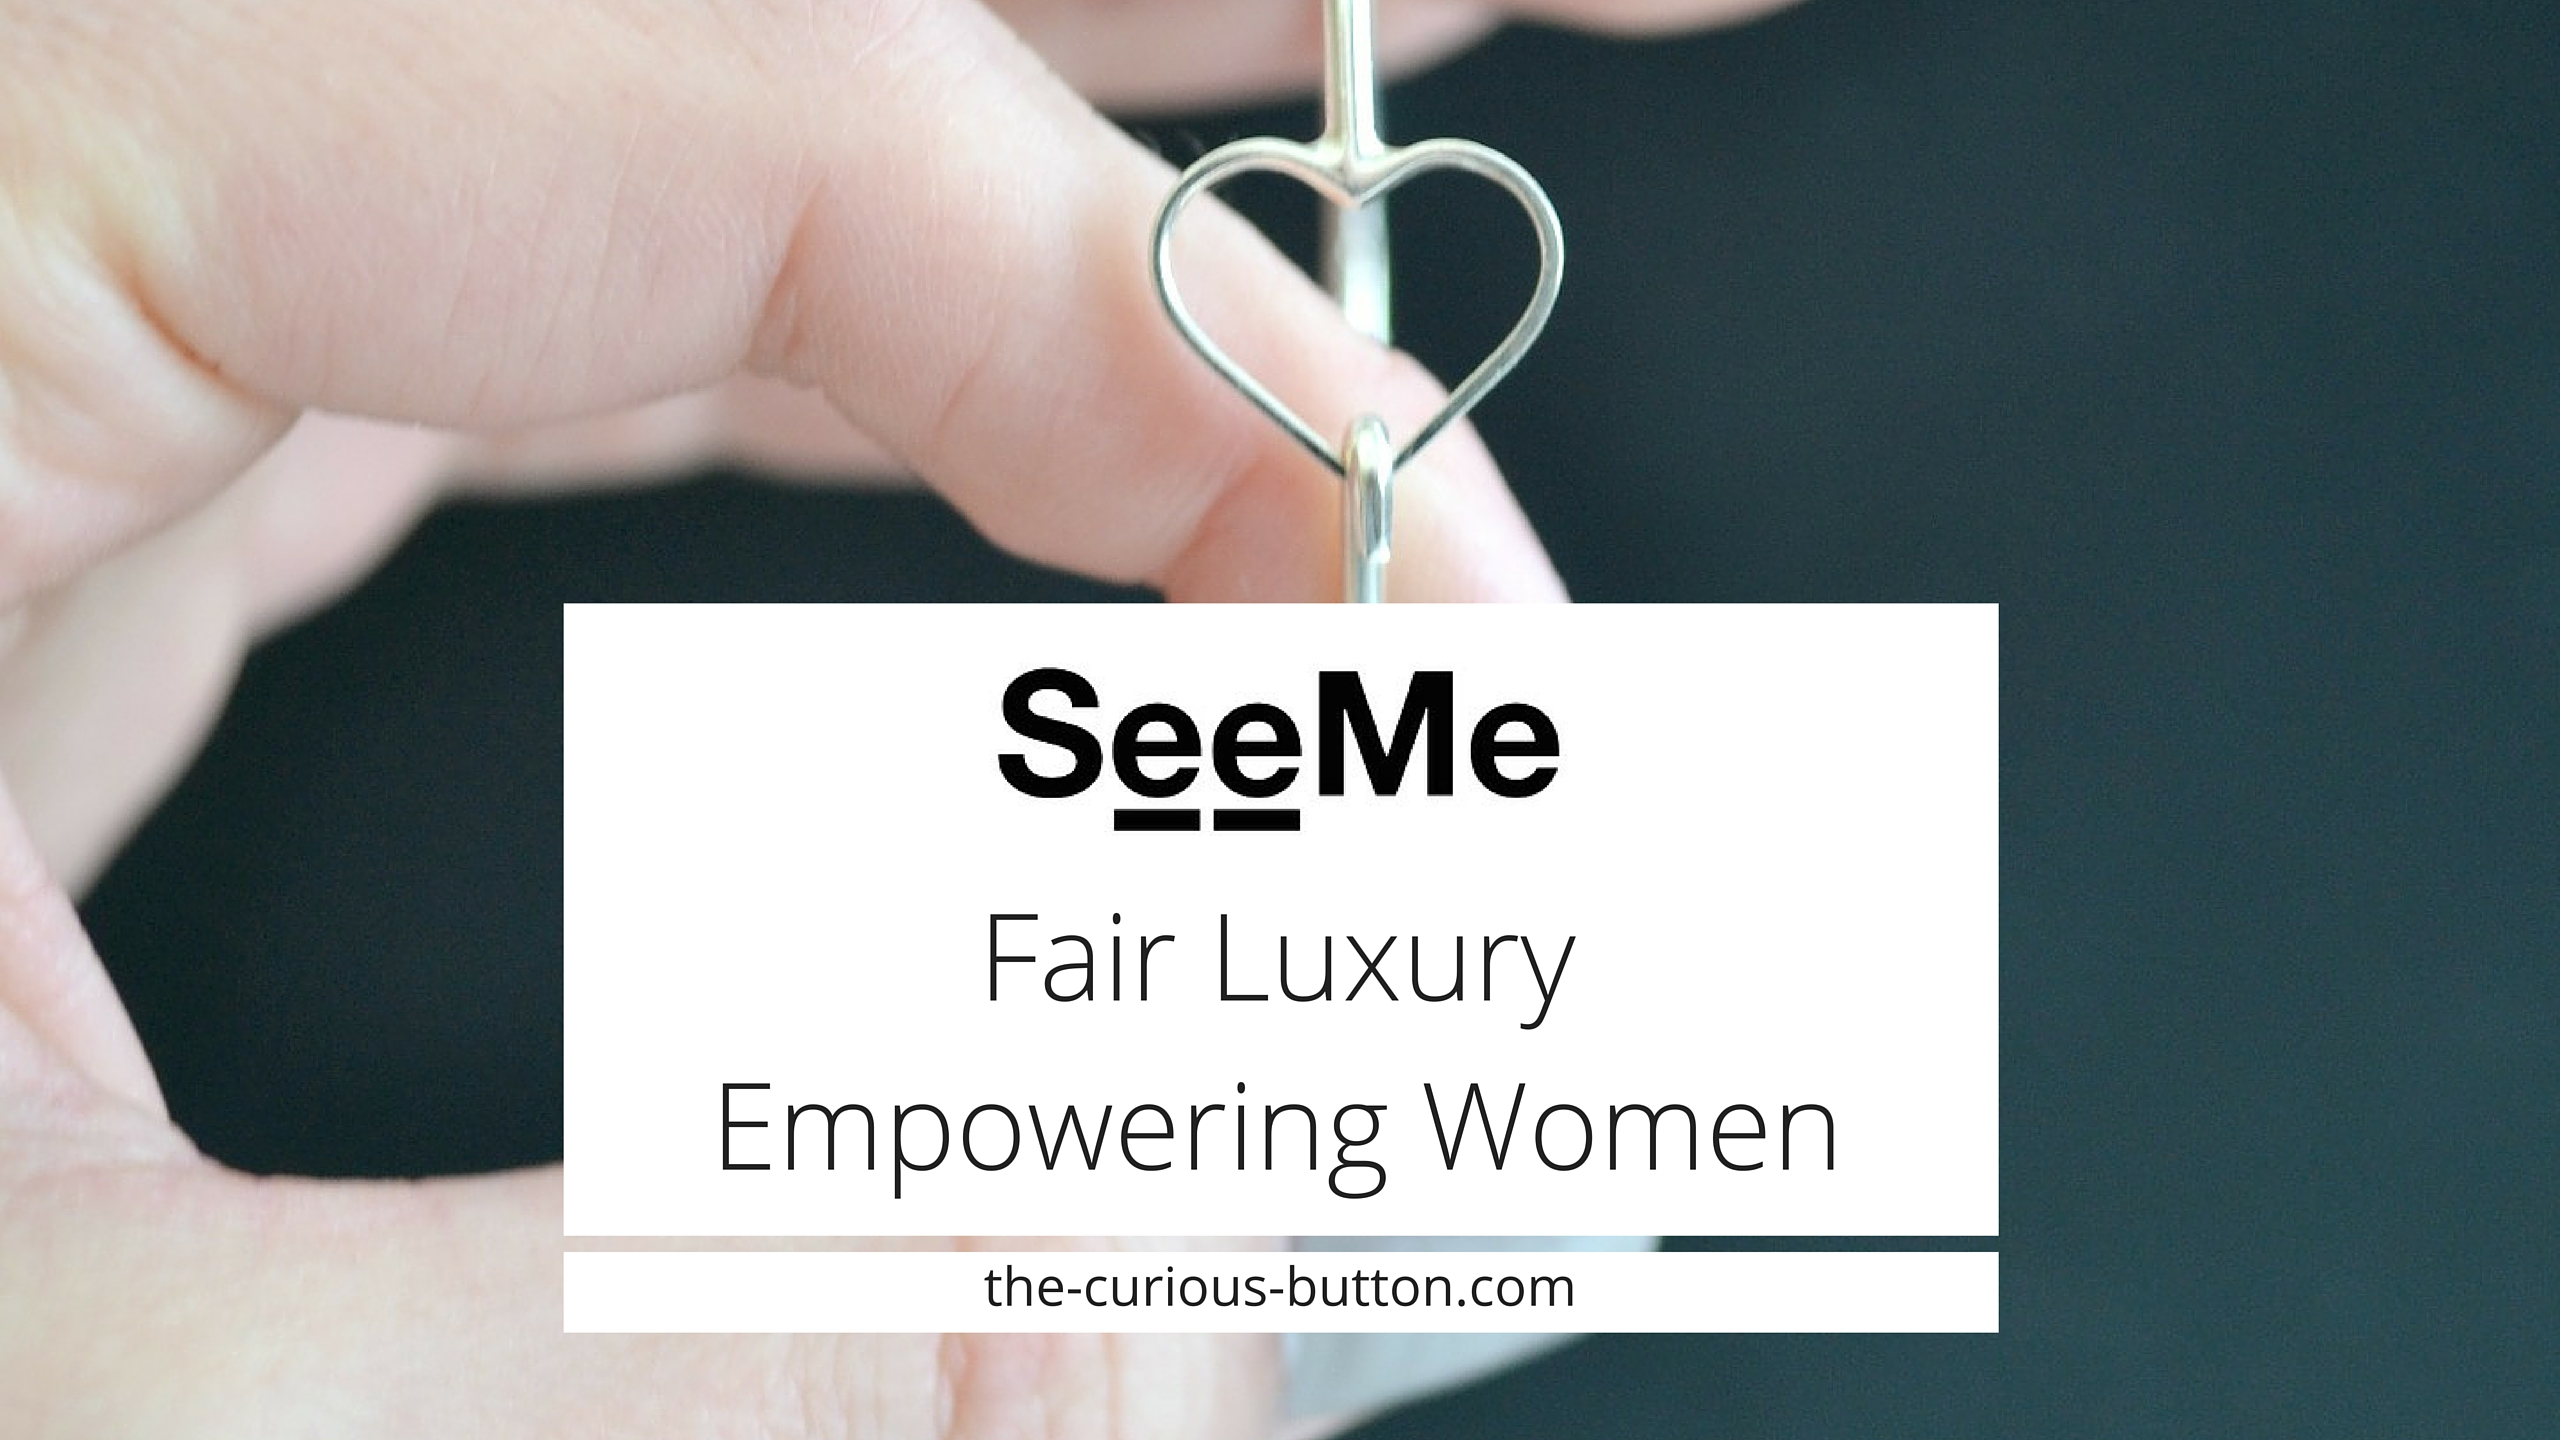 SeeMe: Fair luxury that empowers women. Join the #heartmovement (and get 20% off!)